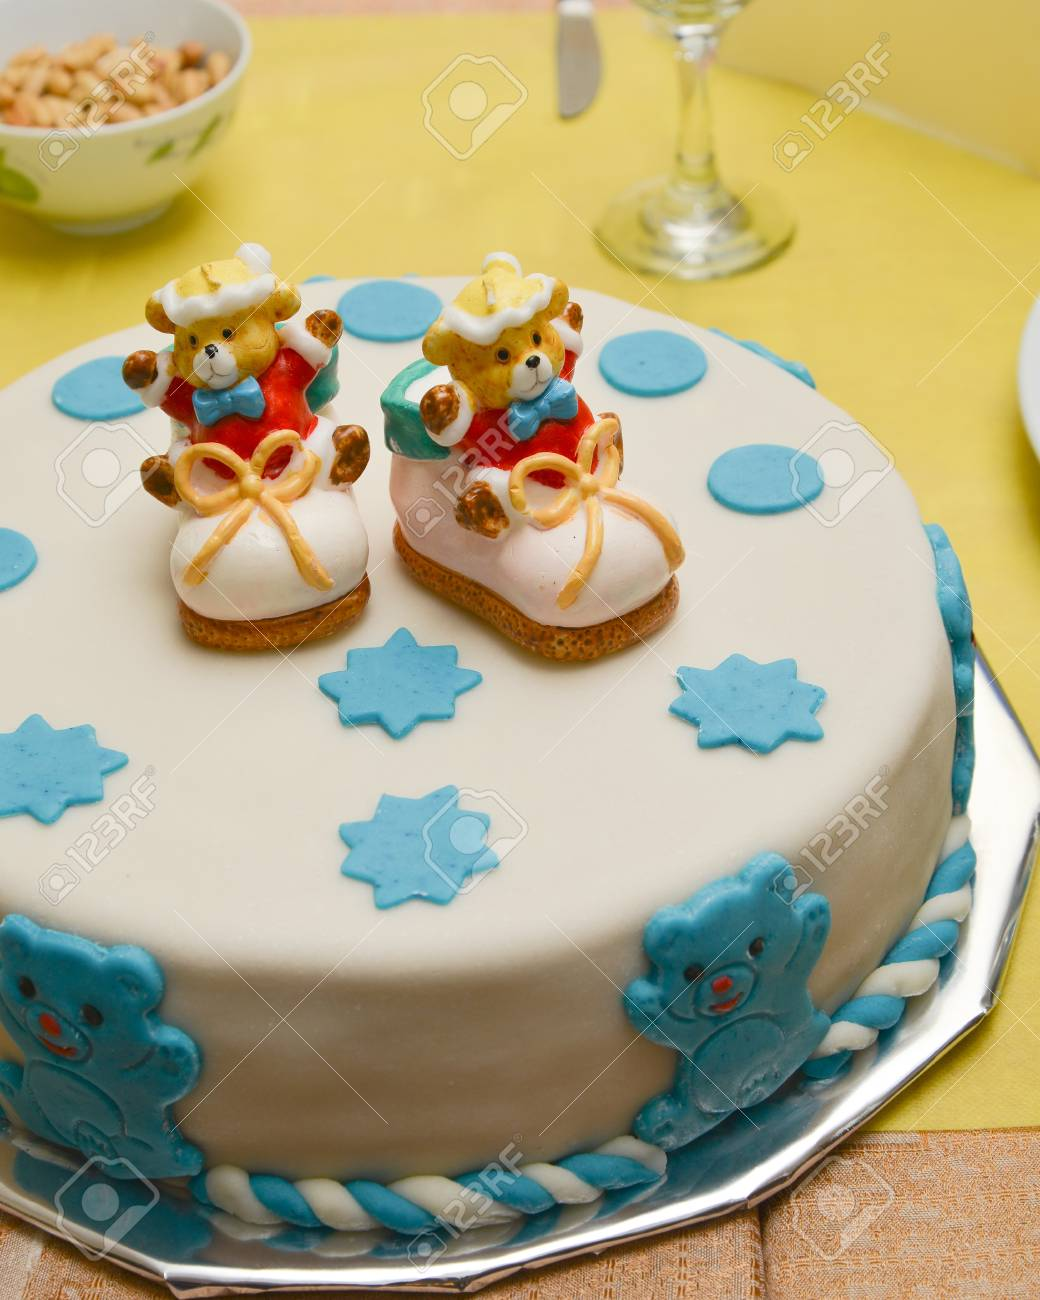 Baby Boy Birthday Cake With Cute Shoes Stock Photo, Picture And ...